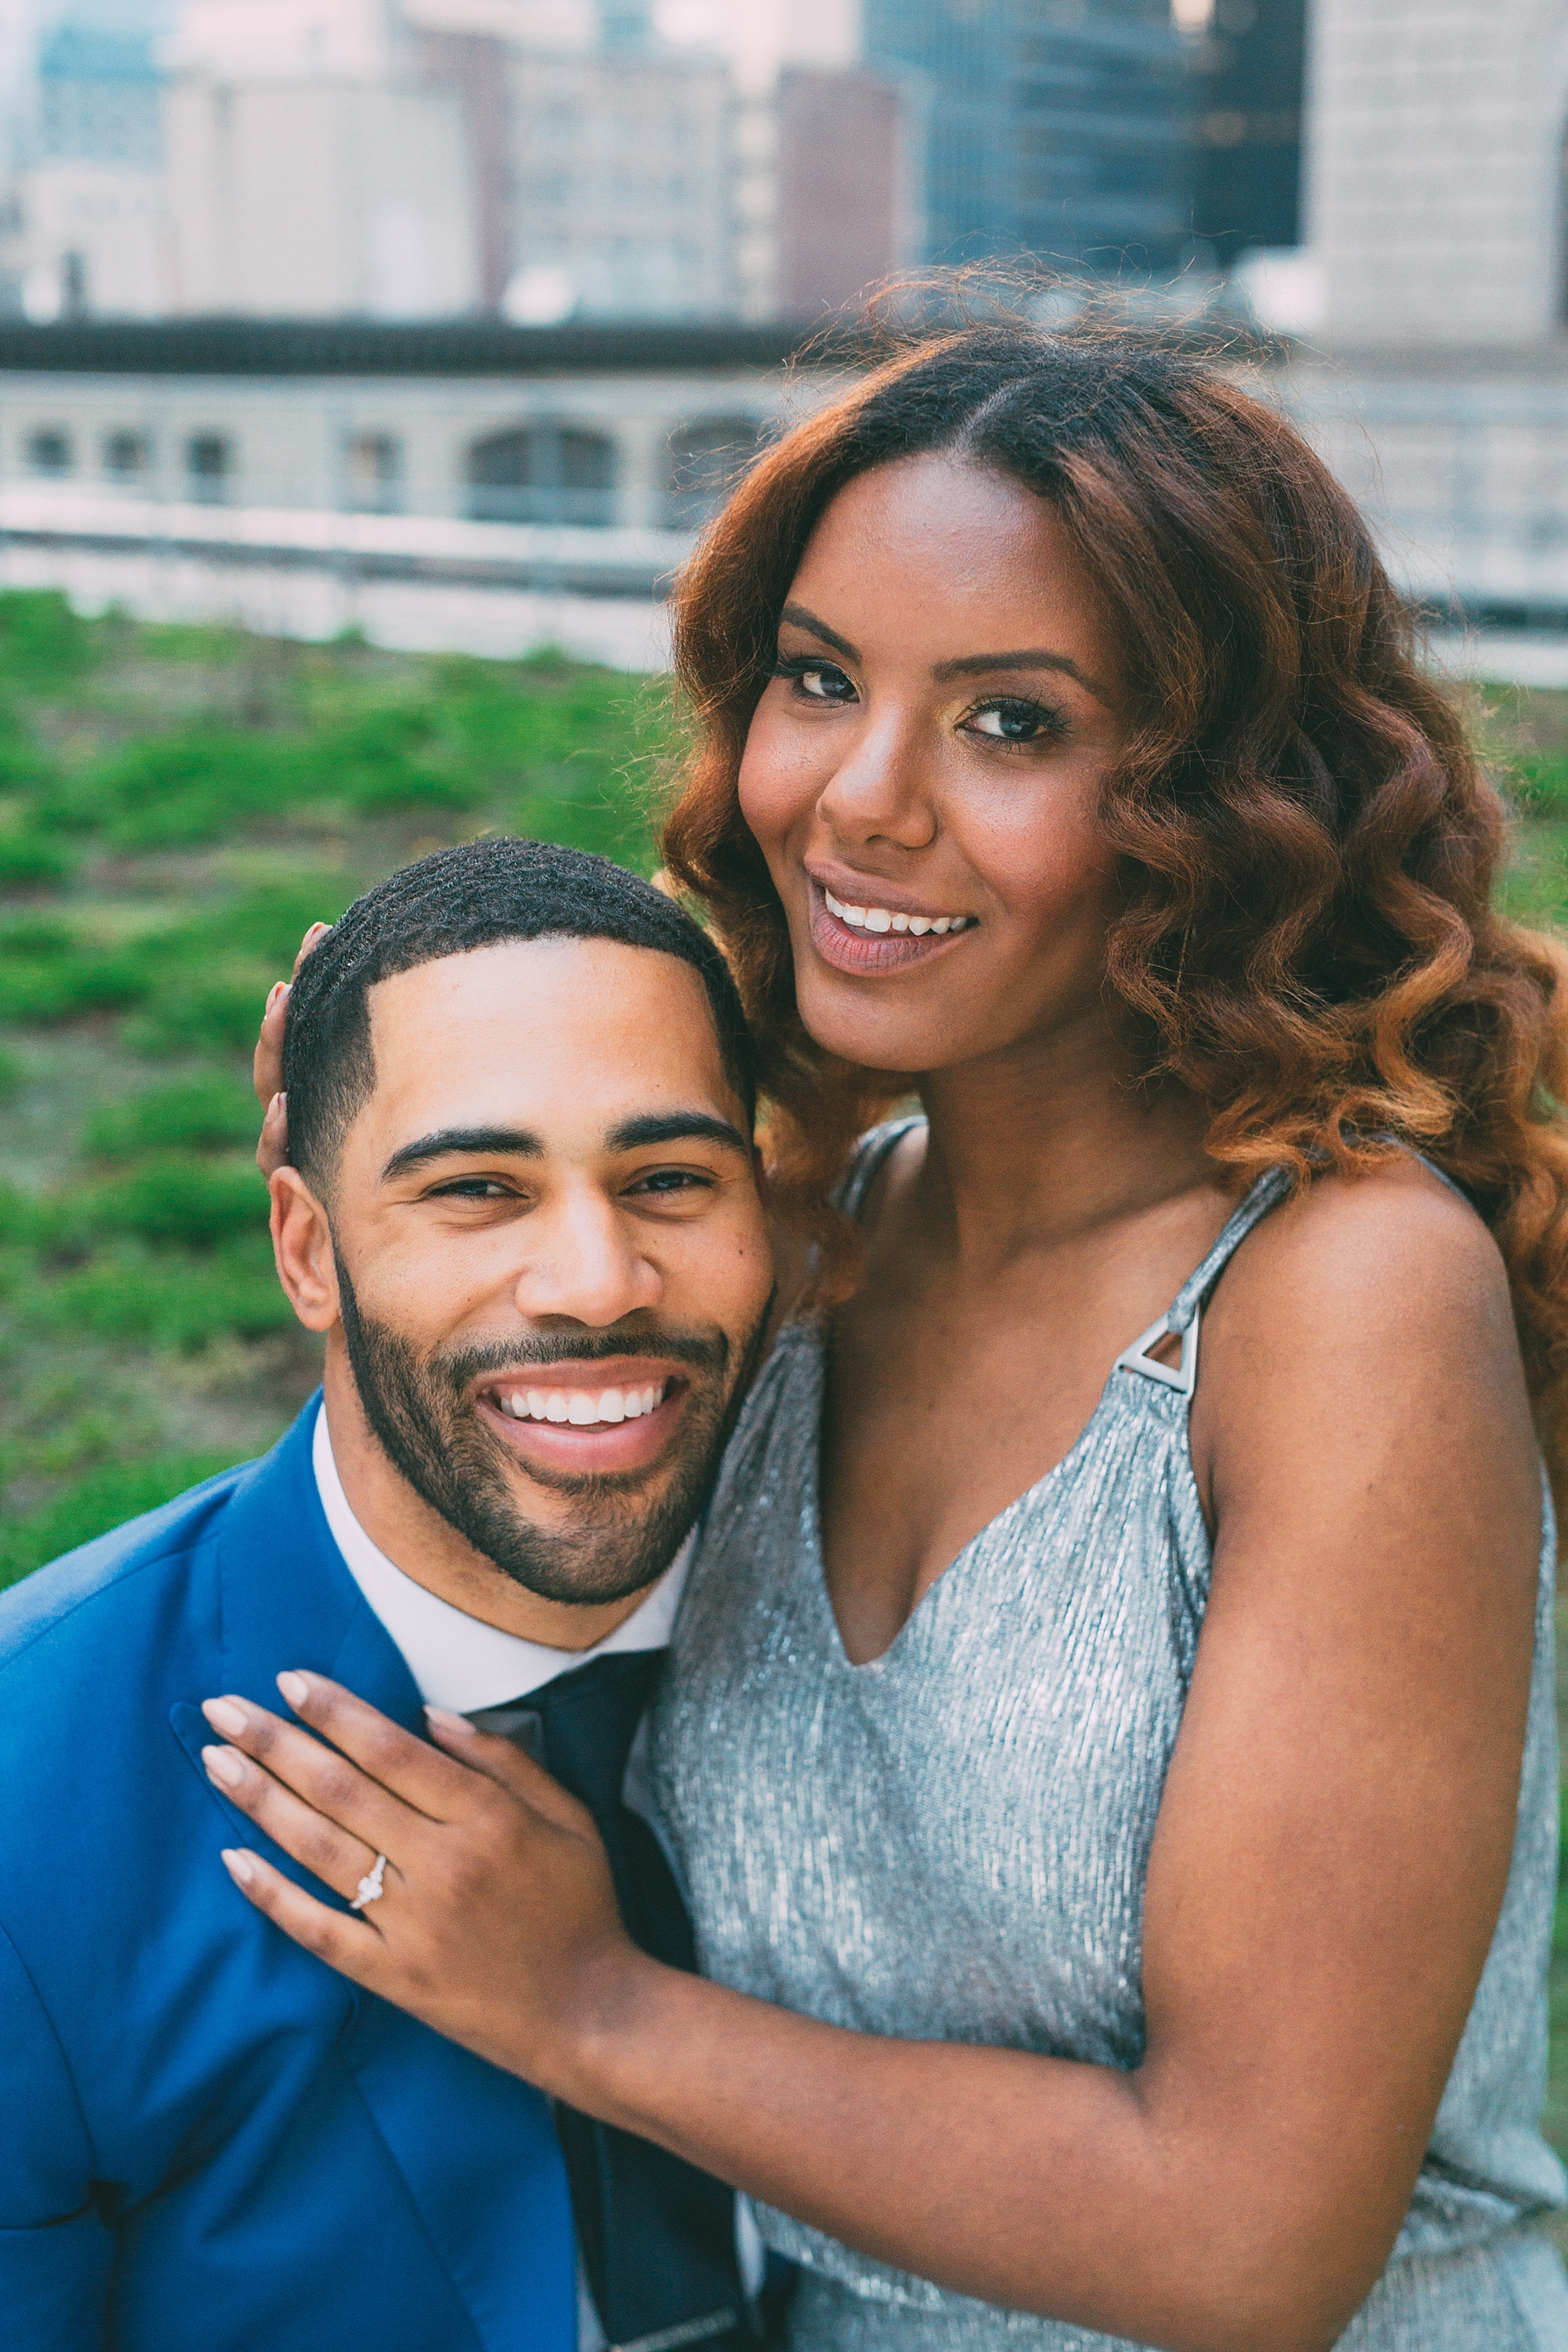 Joe_Mac_Creative_Wedding_Engagements_Photography_Philadelphia_Broad_Street_Proposal_0041.jpg